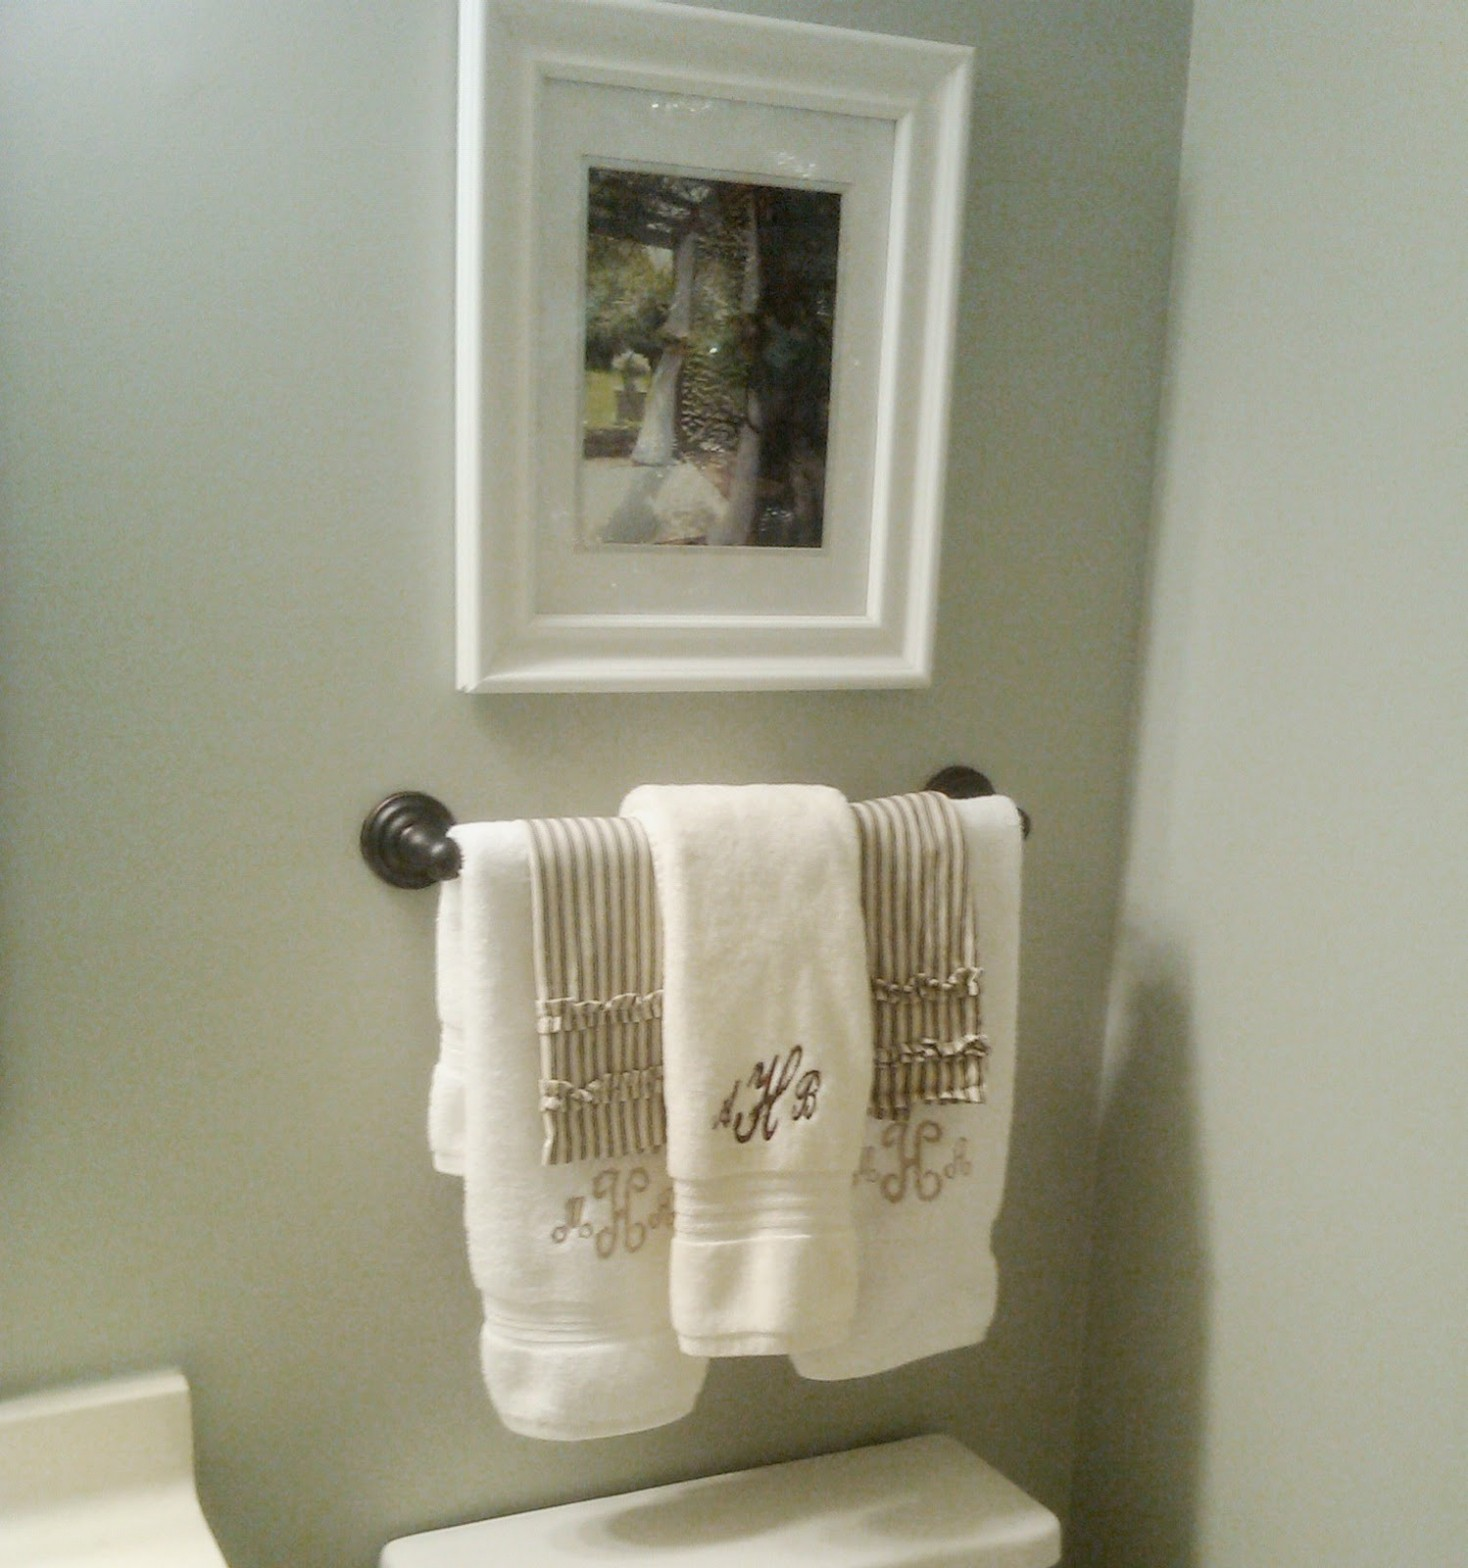 Bathroom Towel Display Lovely Bathroom Hand Towel Display Ideas Gallery